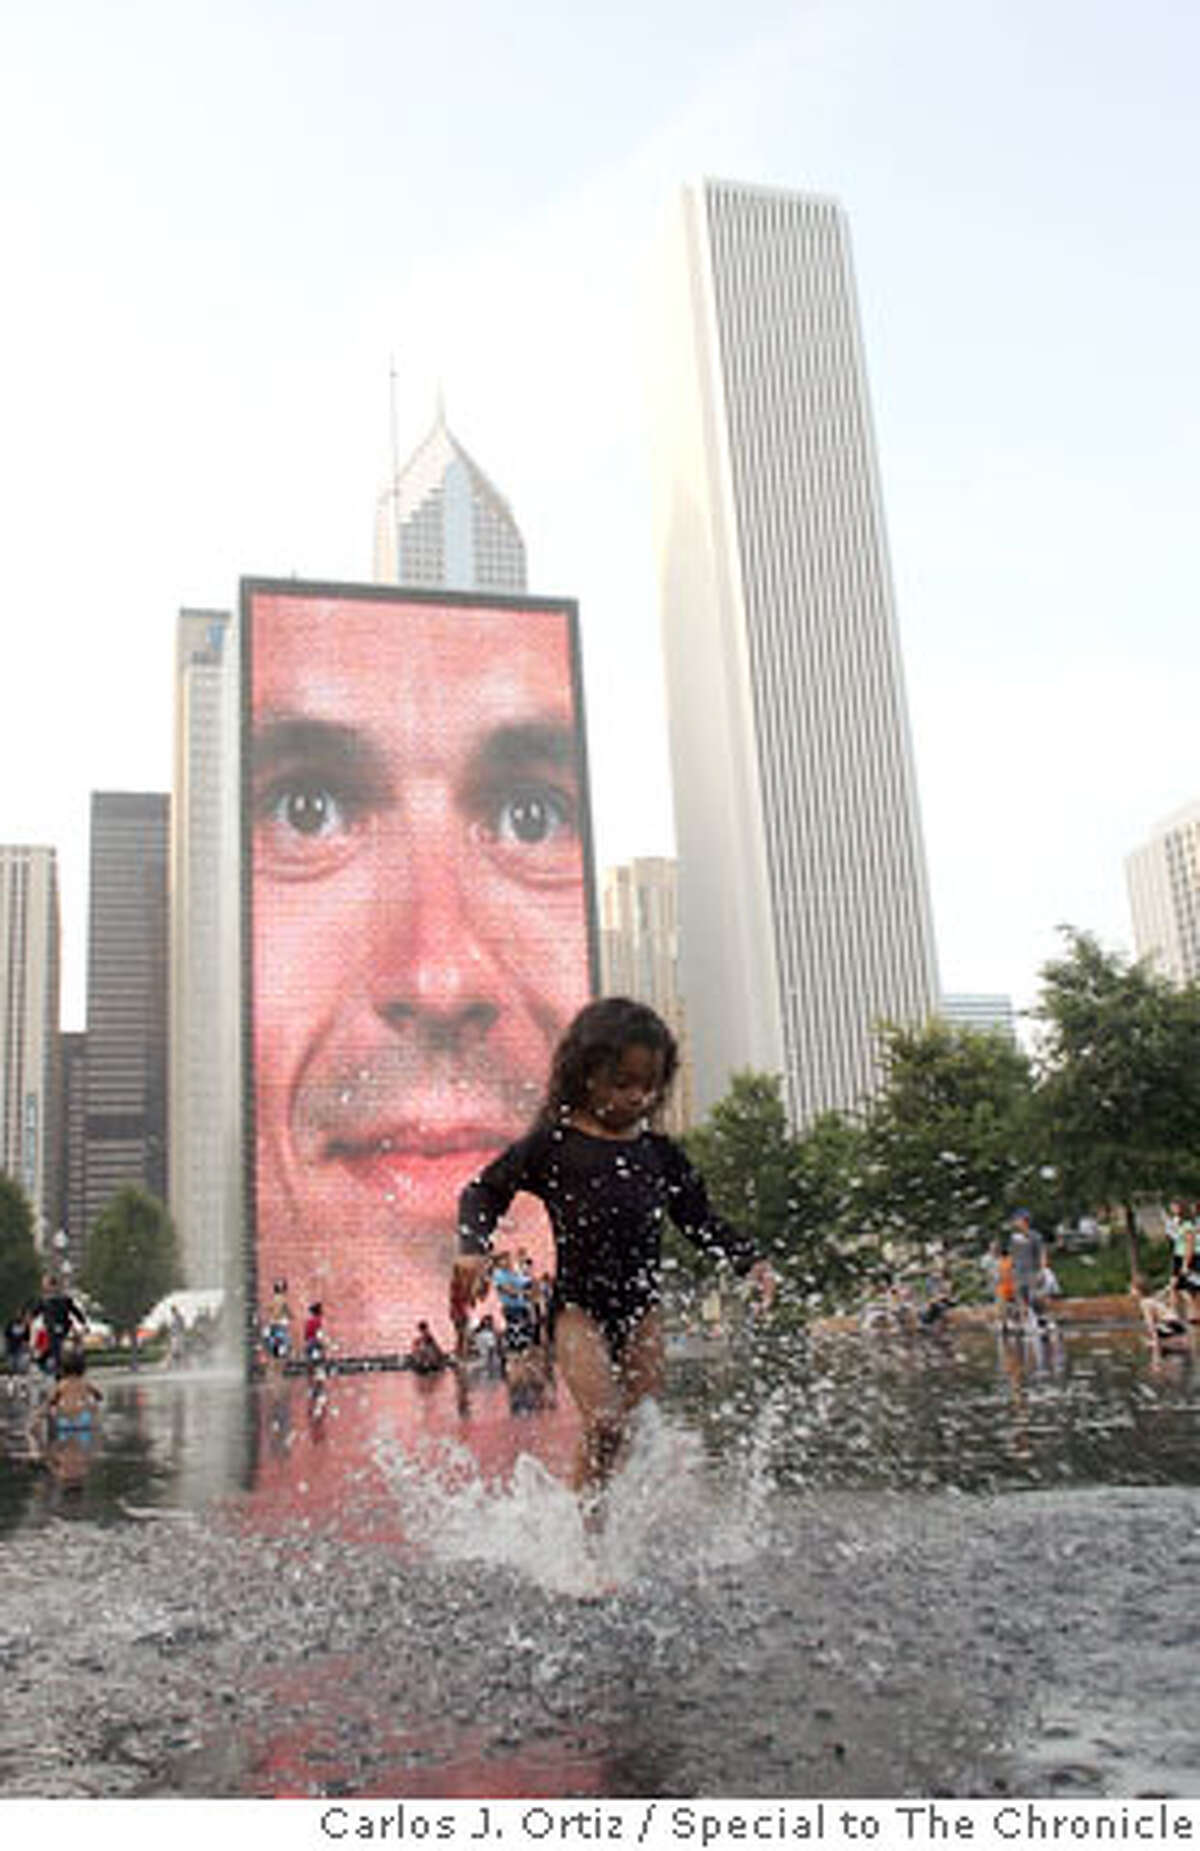 Crown Fountain At the southwest corner of the park (Michigan Avenue and Monroe Street) are twin 50-foot fountain towers. In addition to the cascading water, the towers display video images of various Chicagoans and lights. On warm summer days, children (as well as youthful- spirited adults) frolic in the shallow water between the two towers and delight in the spray from the fountains. The surrounding green area is a relaxing place to spread out on a blanket and read a book. Ran on: 07-30-2006